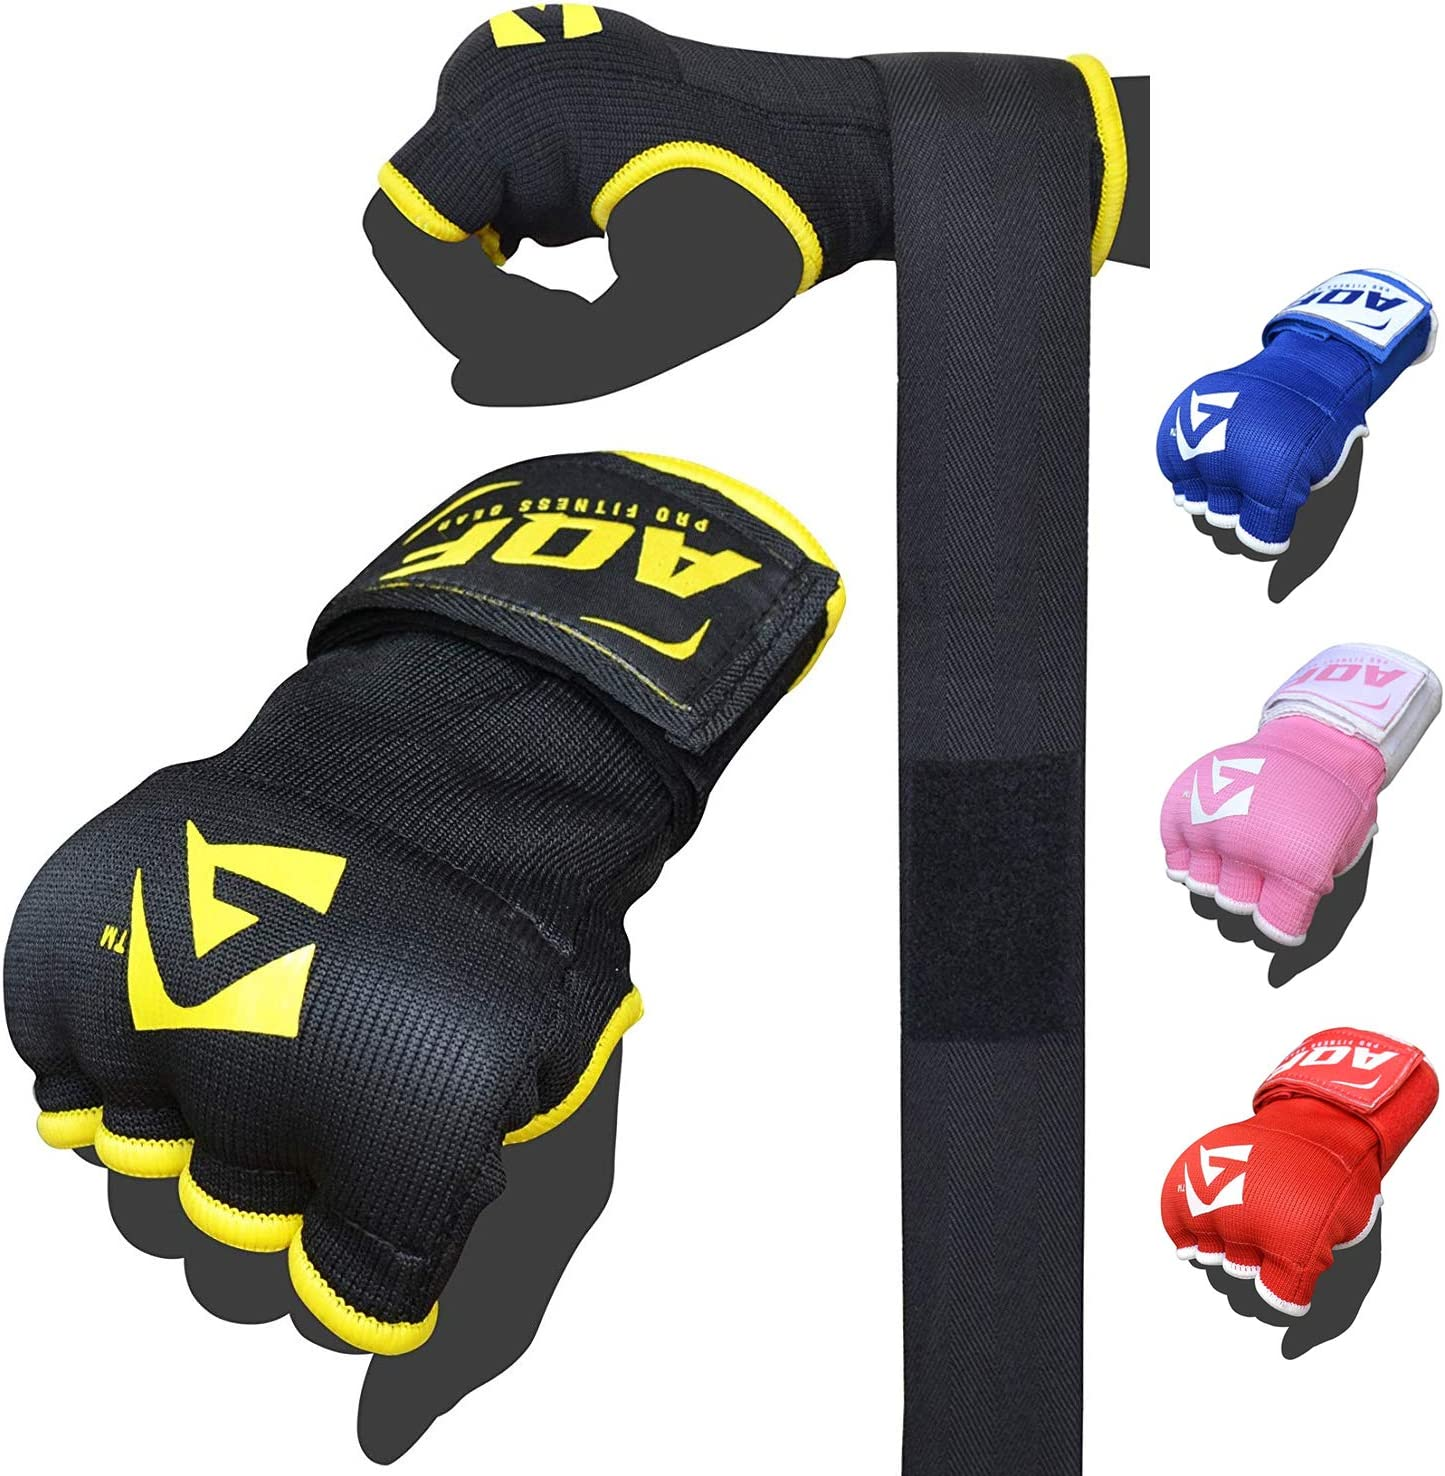 Red Inner Gloves Hand Wraps Boxing Gel Padded MMA Fight Protector Bandage Kick